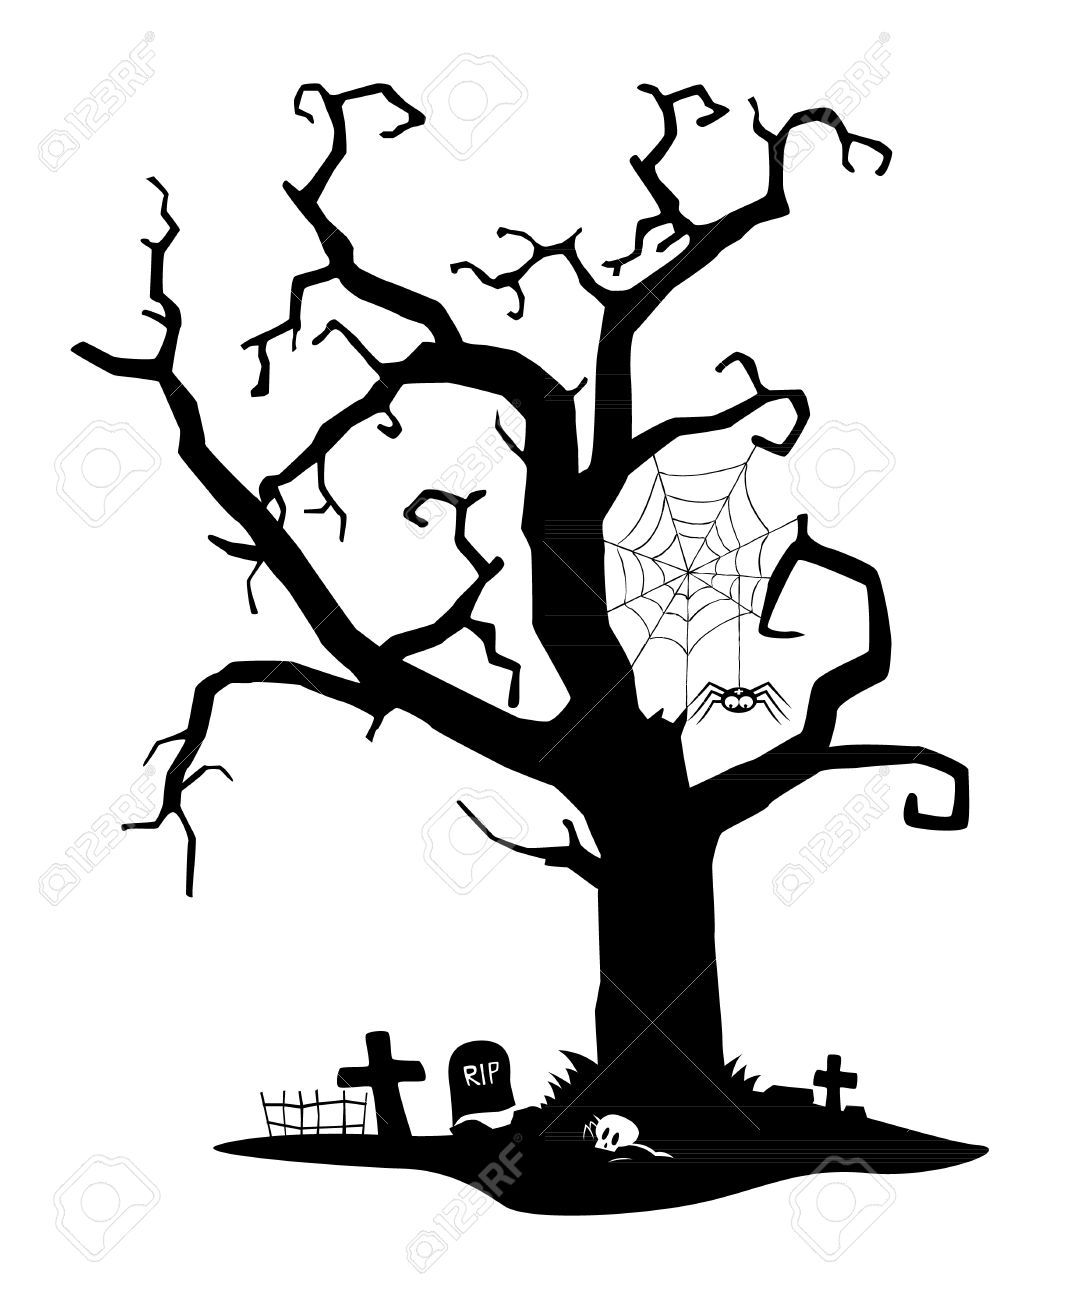 hight resolution of spooky black silhouette of tree near cemetery royalty free